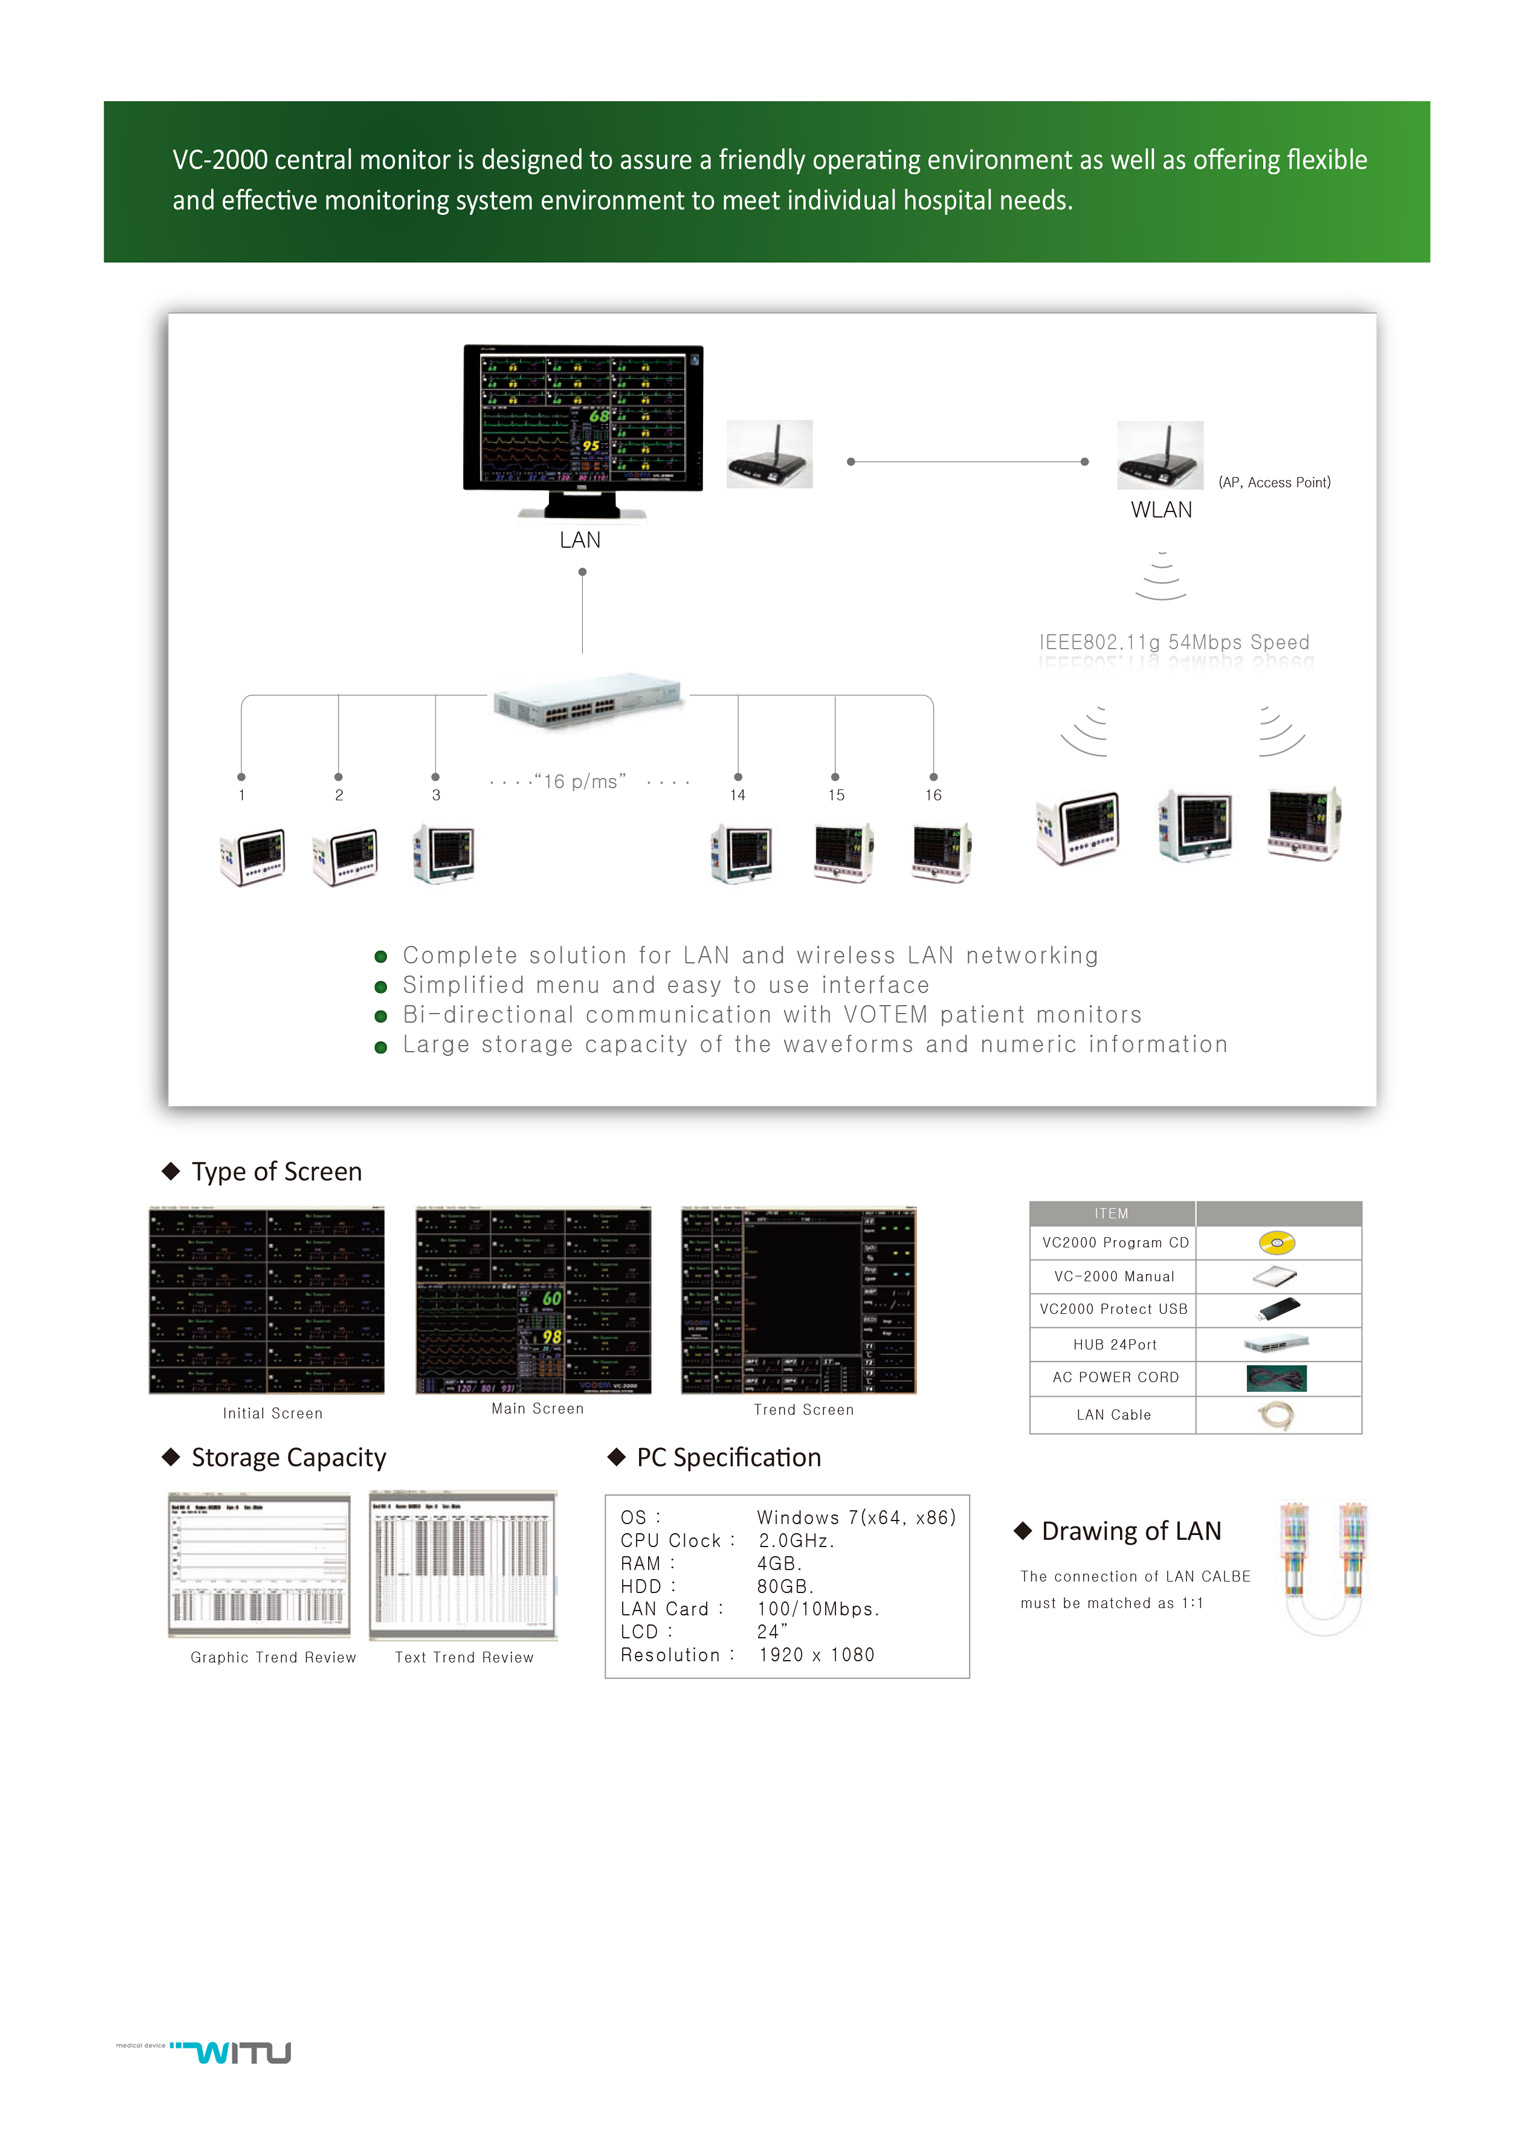 VC-2000-CENTRAL-MONITORING_s2.jpg